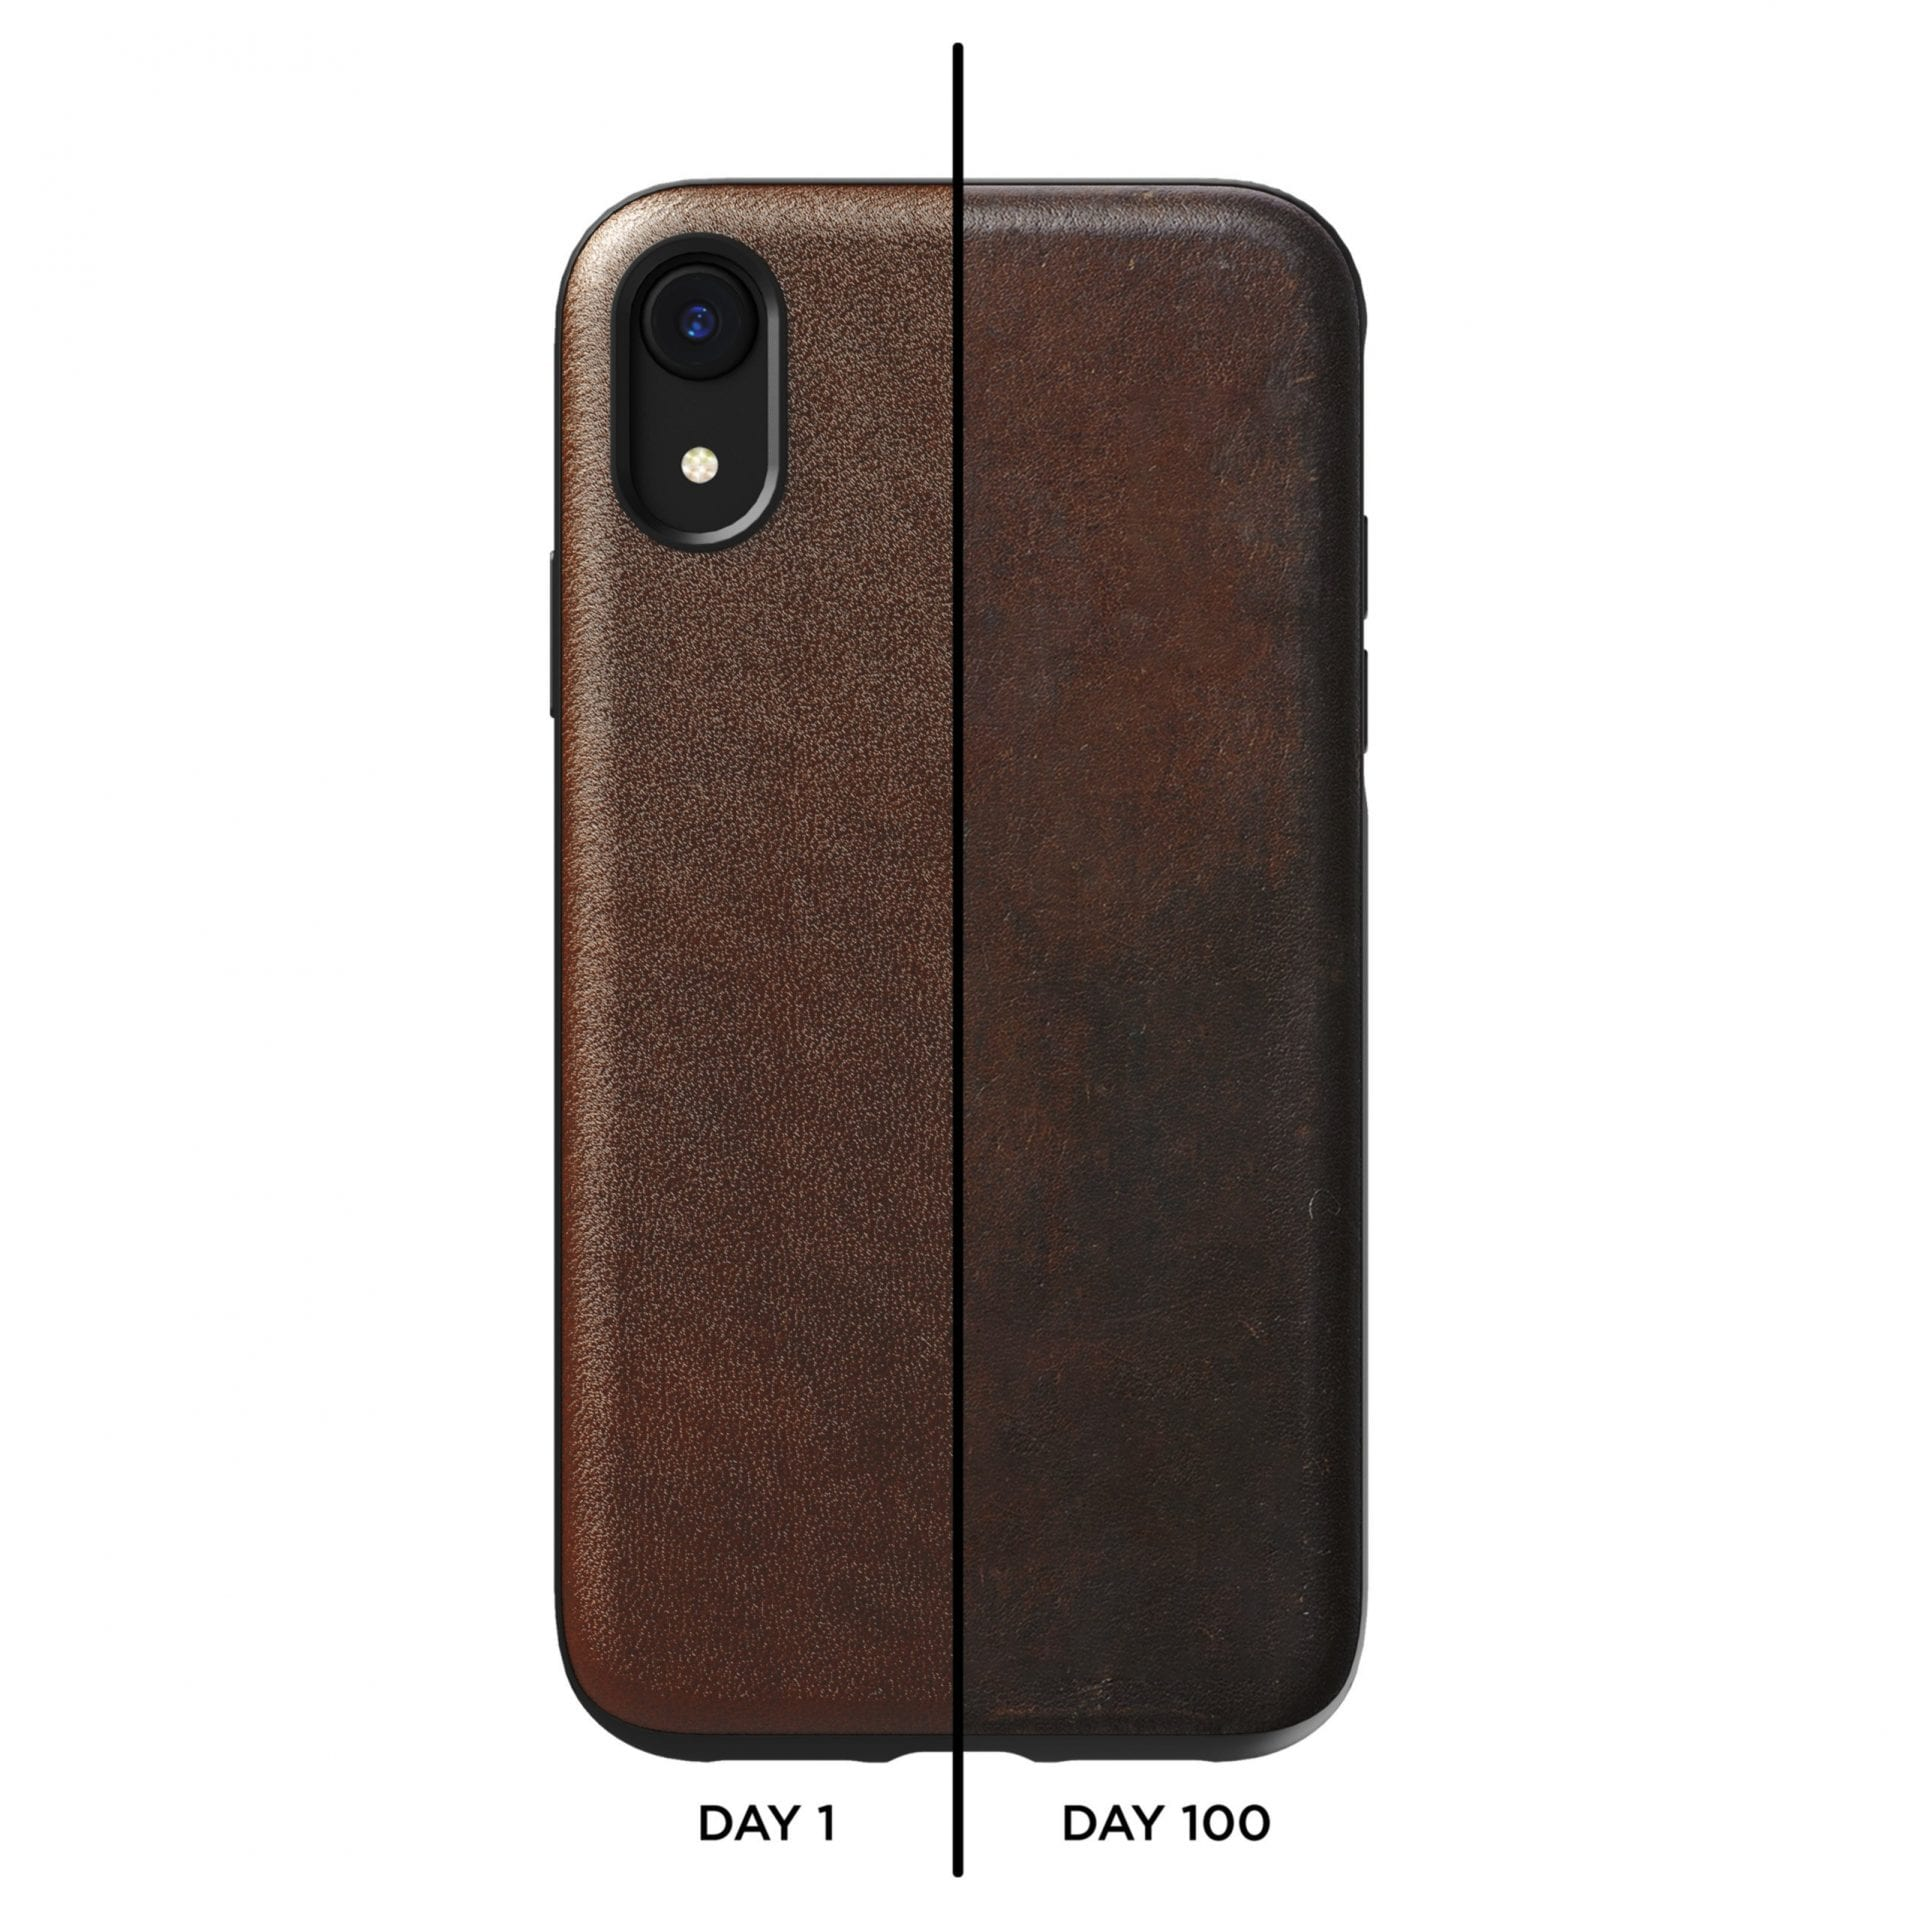 NOMAD iPhone XR Rugged Case - Rustic Brown - Netnaturshop